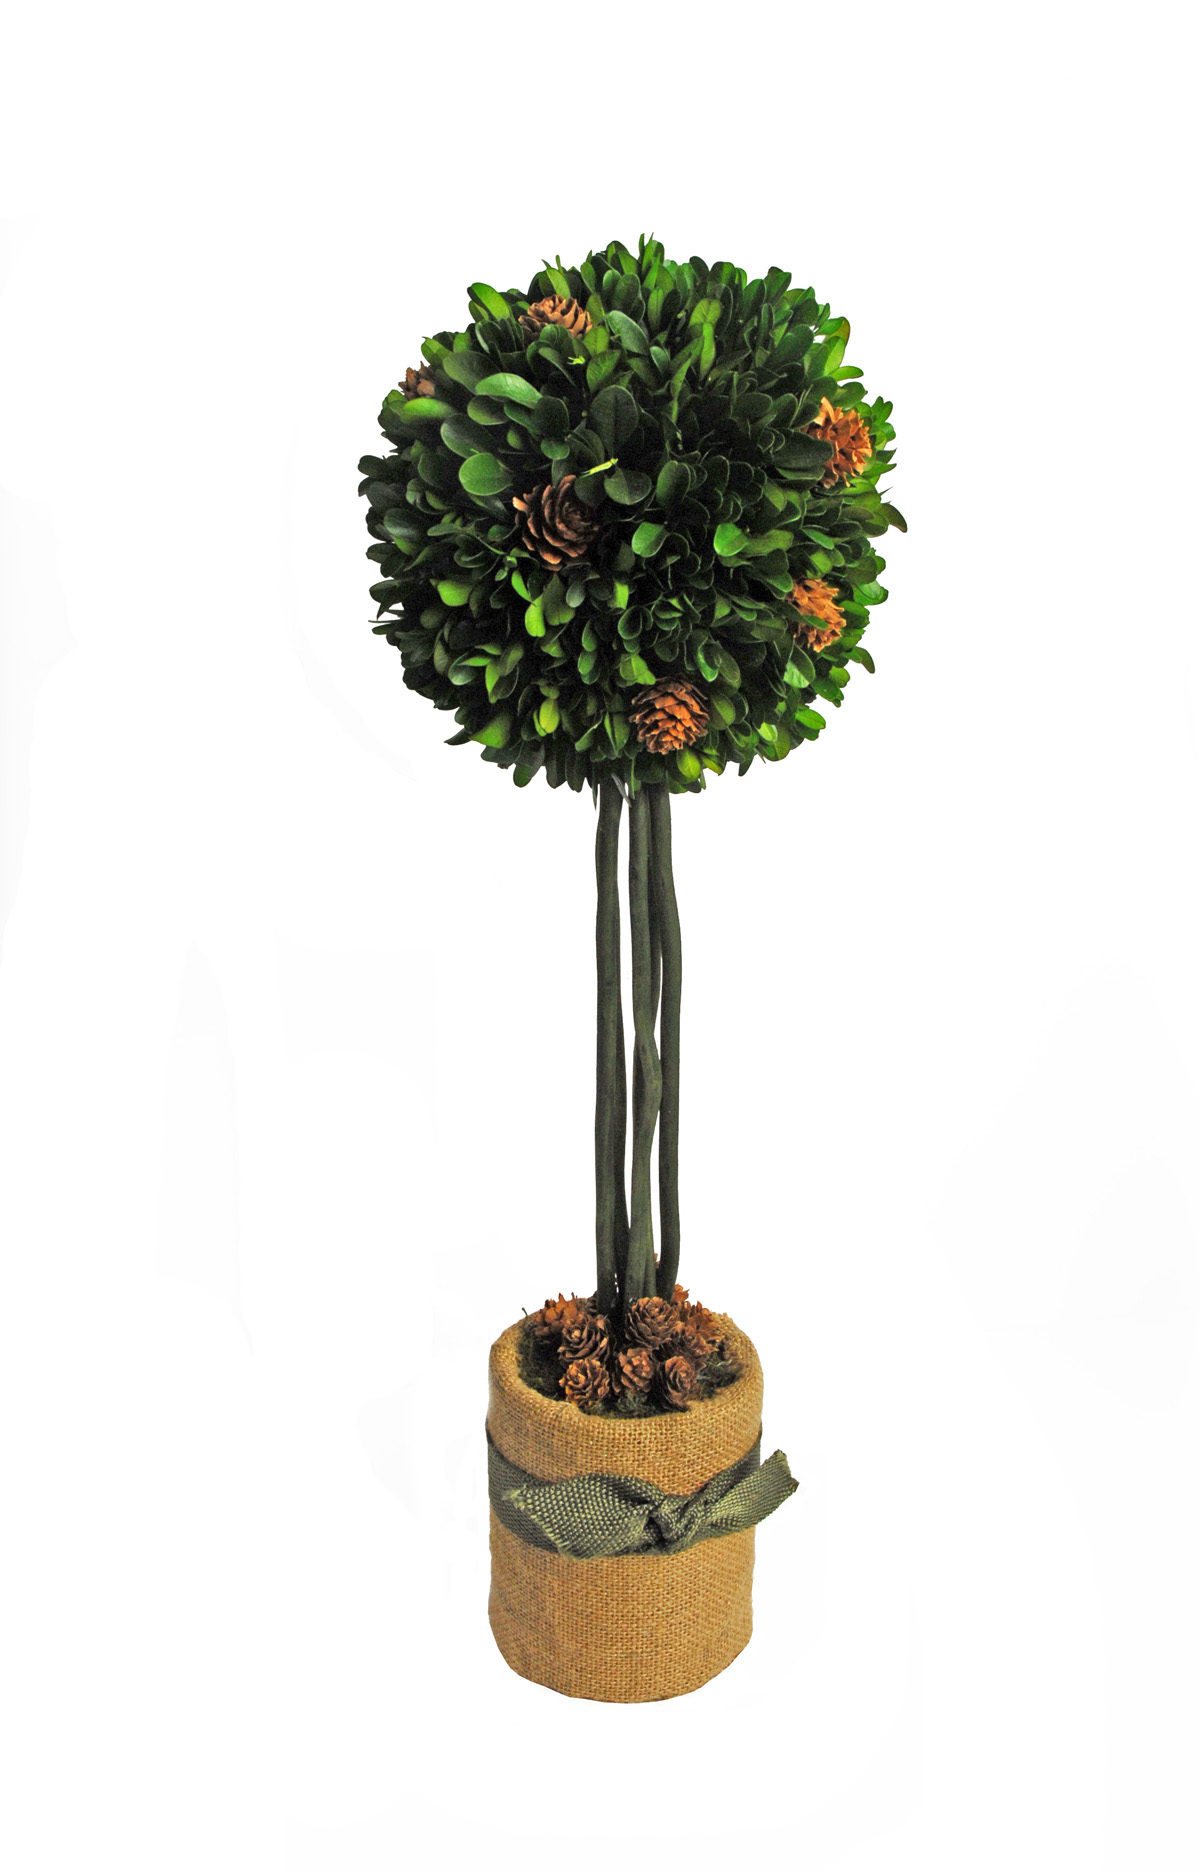 Wonderful Preserved Boxwood In Round Design On Vase With Ribbon For Home Accessories Ideas